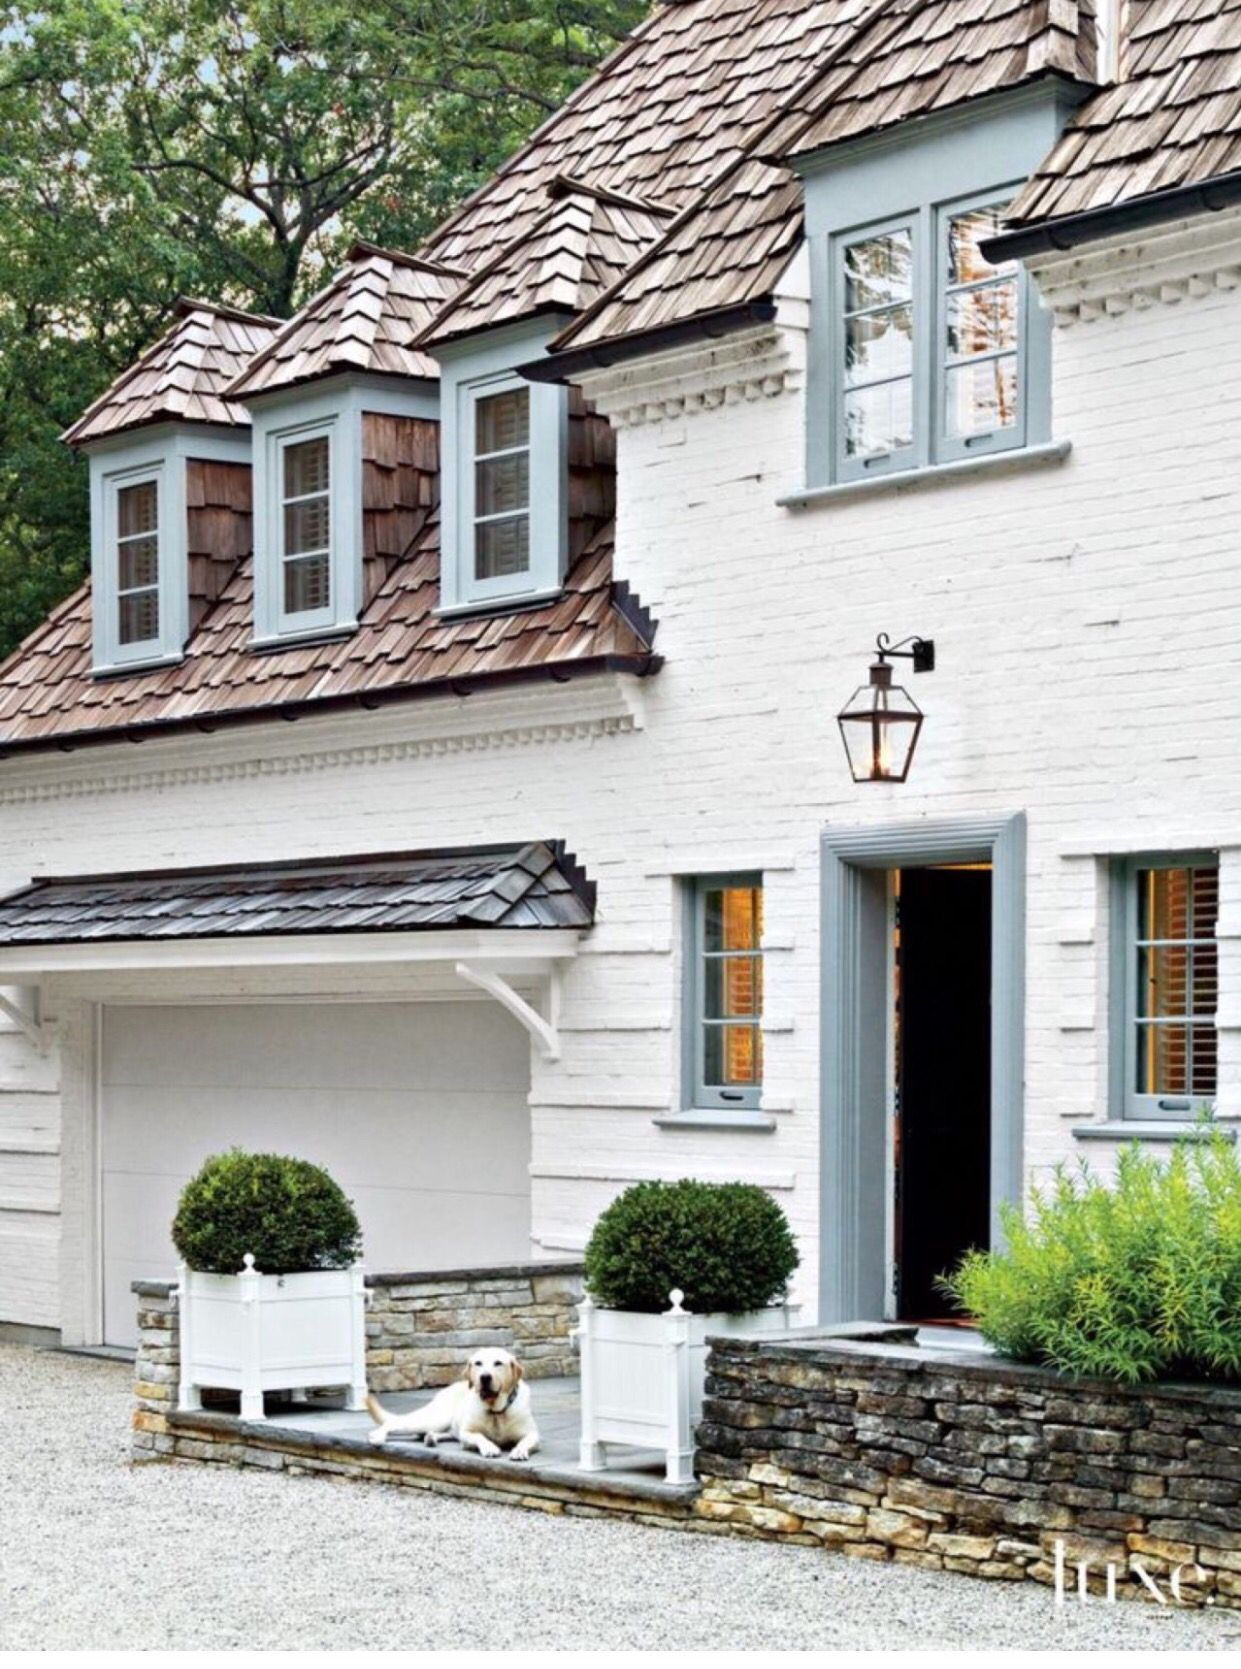 Pin by HGG on •DREAM HOME• | Pinterest | Exterior colors, House and ...